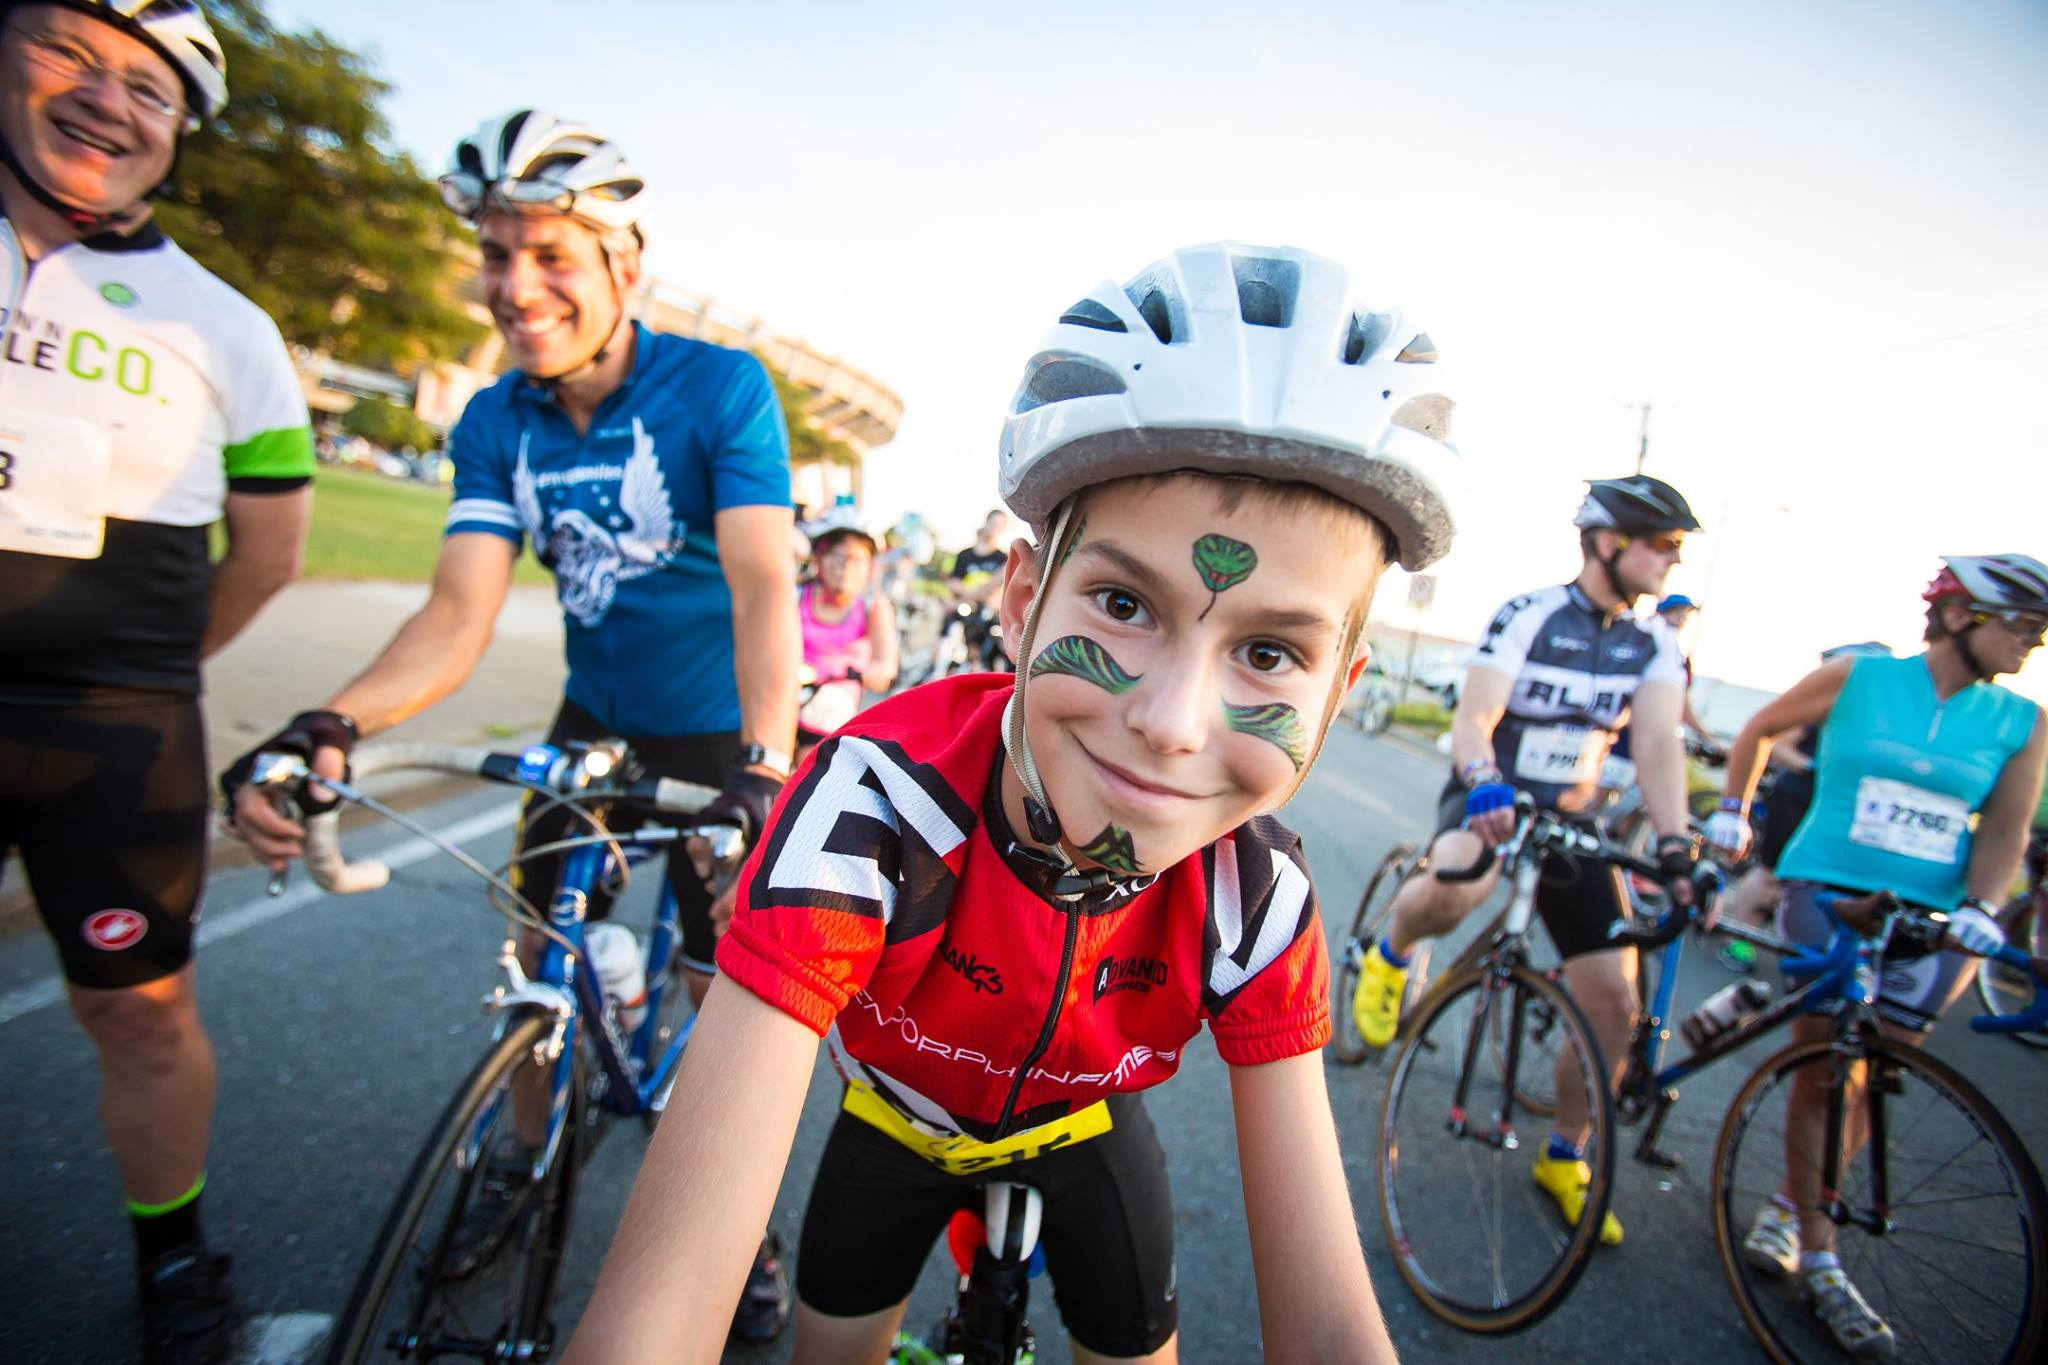 Sign Up For The Virginia Credit Union Moonlight Ride